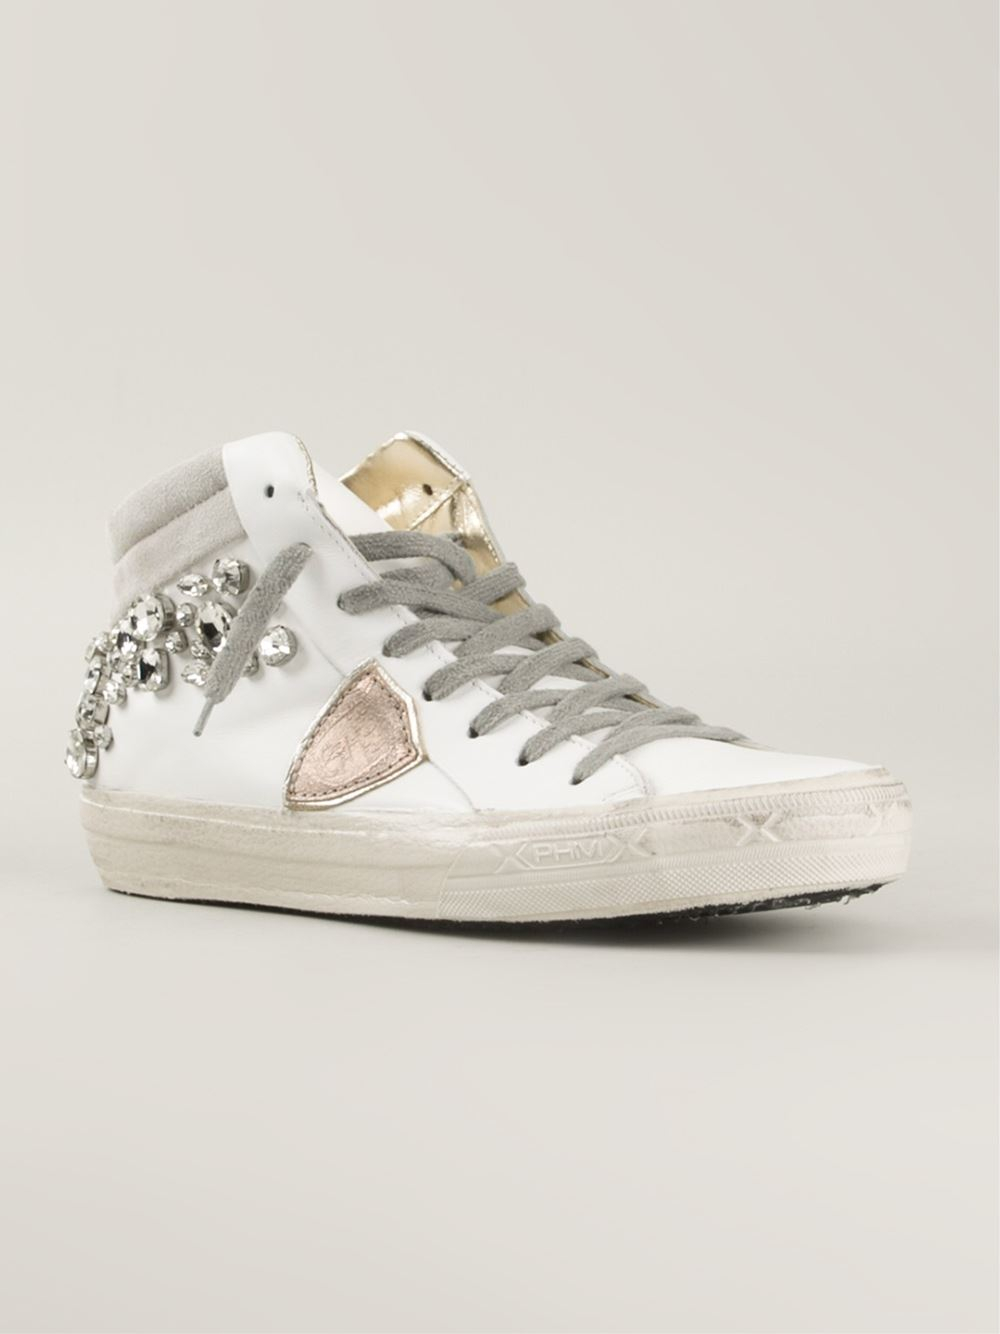 philippe model embellished hi top sneakers in white lyst. Black Bedroom Furniture Sets. Home Design Ideas